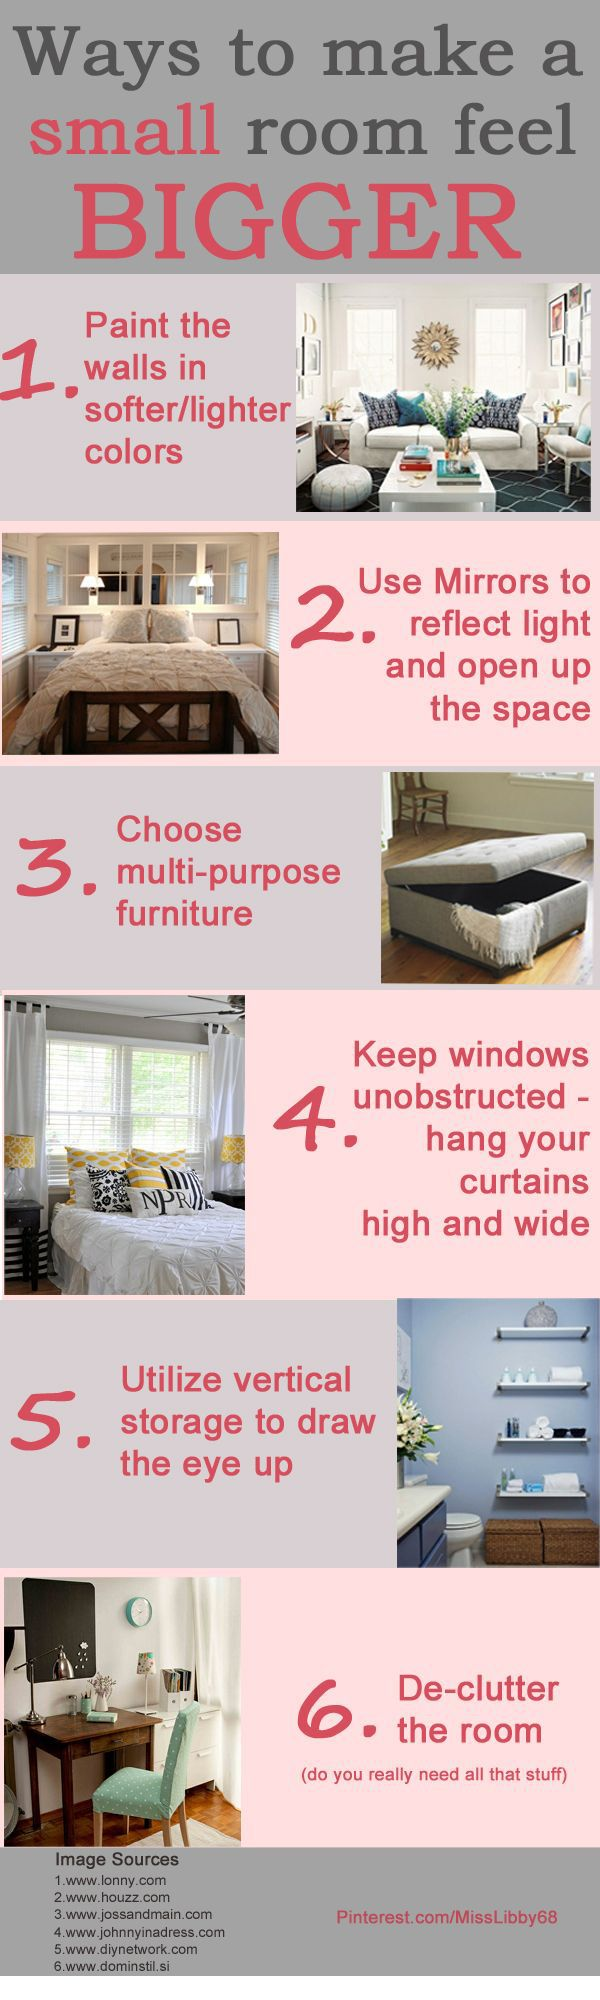 20 Bedroom Organization Tips To Make The Most Of A Small Space Part 46